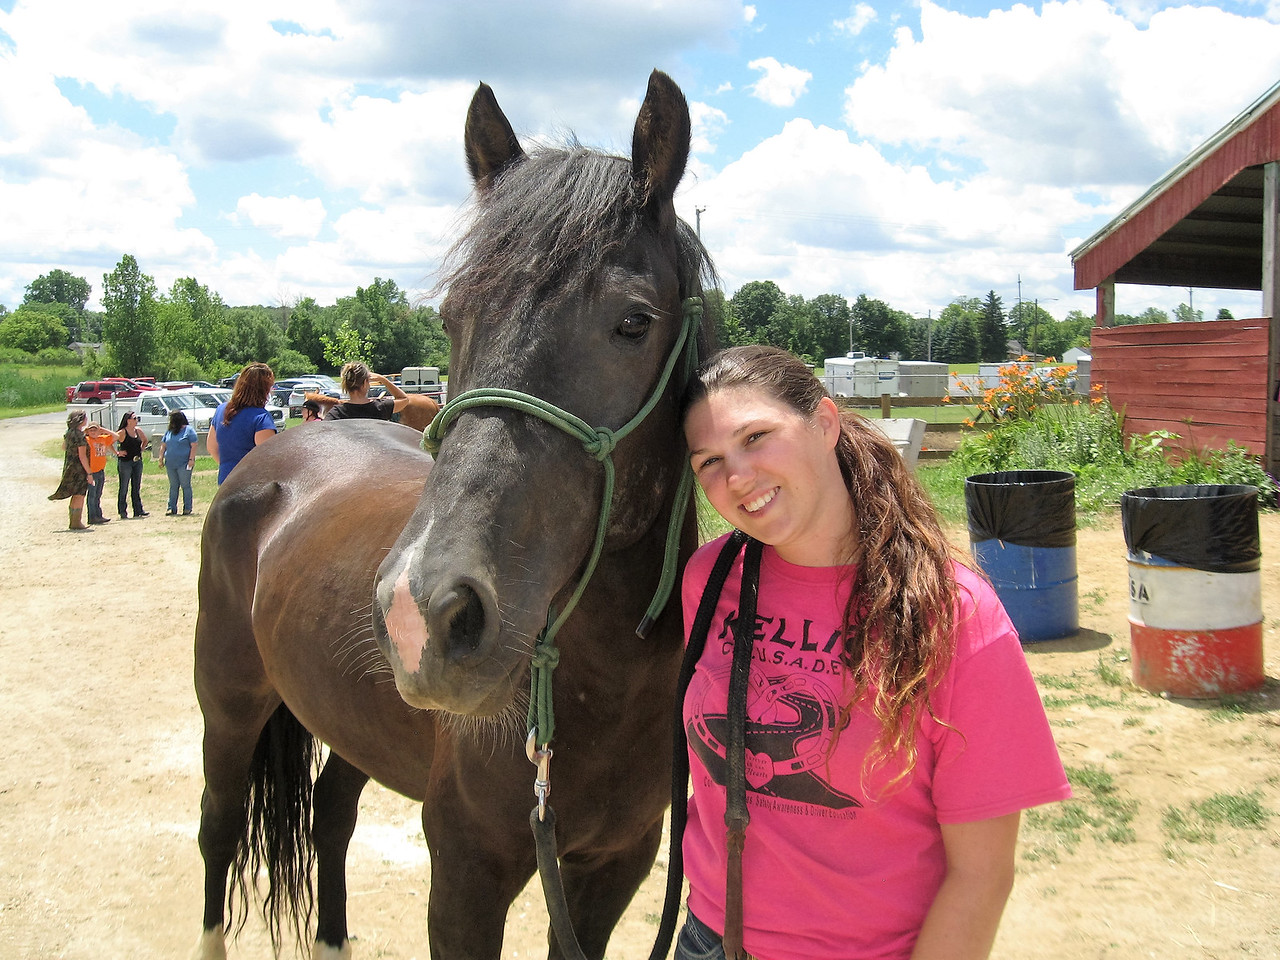 BOB SANDRICK / GAZETTE  Kelsey Spencer trained her horse Baker, a mustang from Wyoming, in 100 days. She named the horse after her best friend, Kelli Baker.